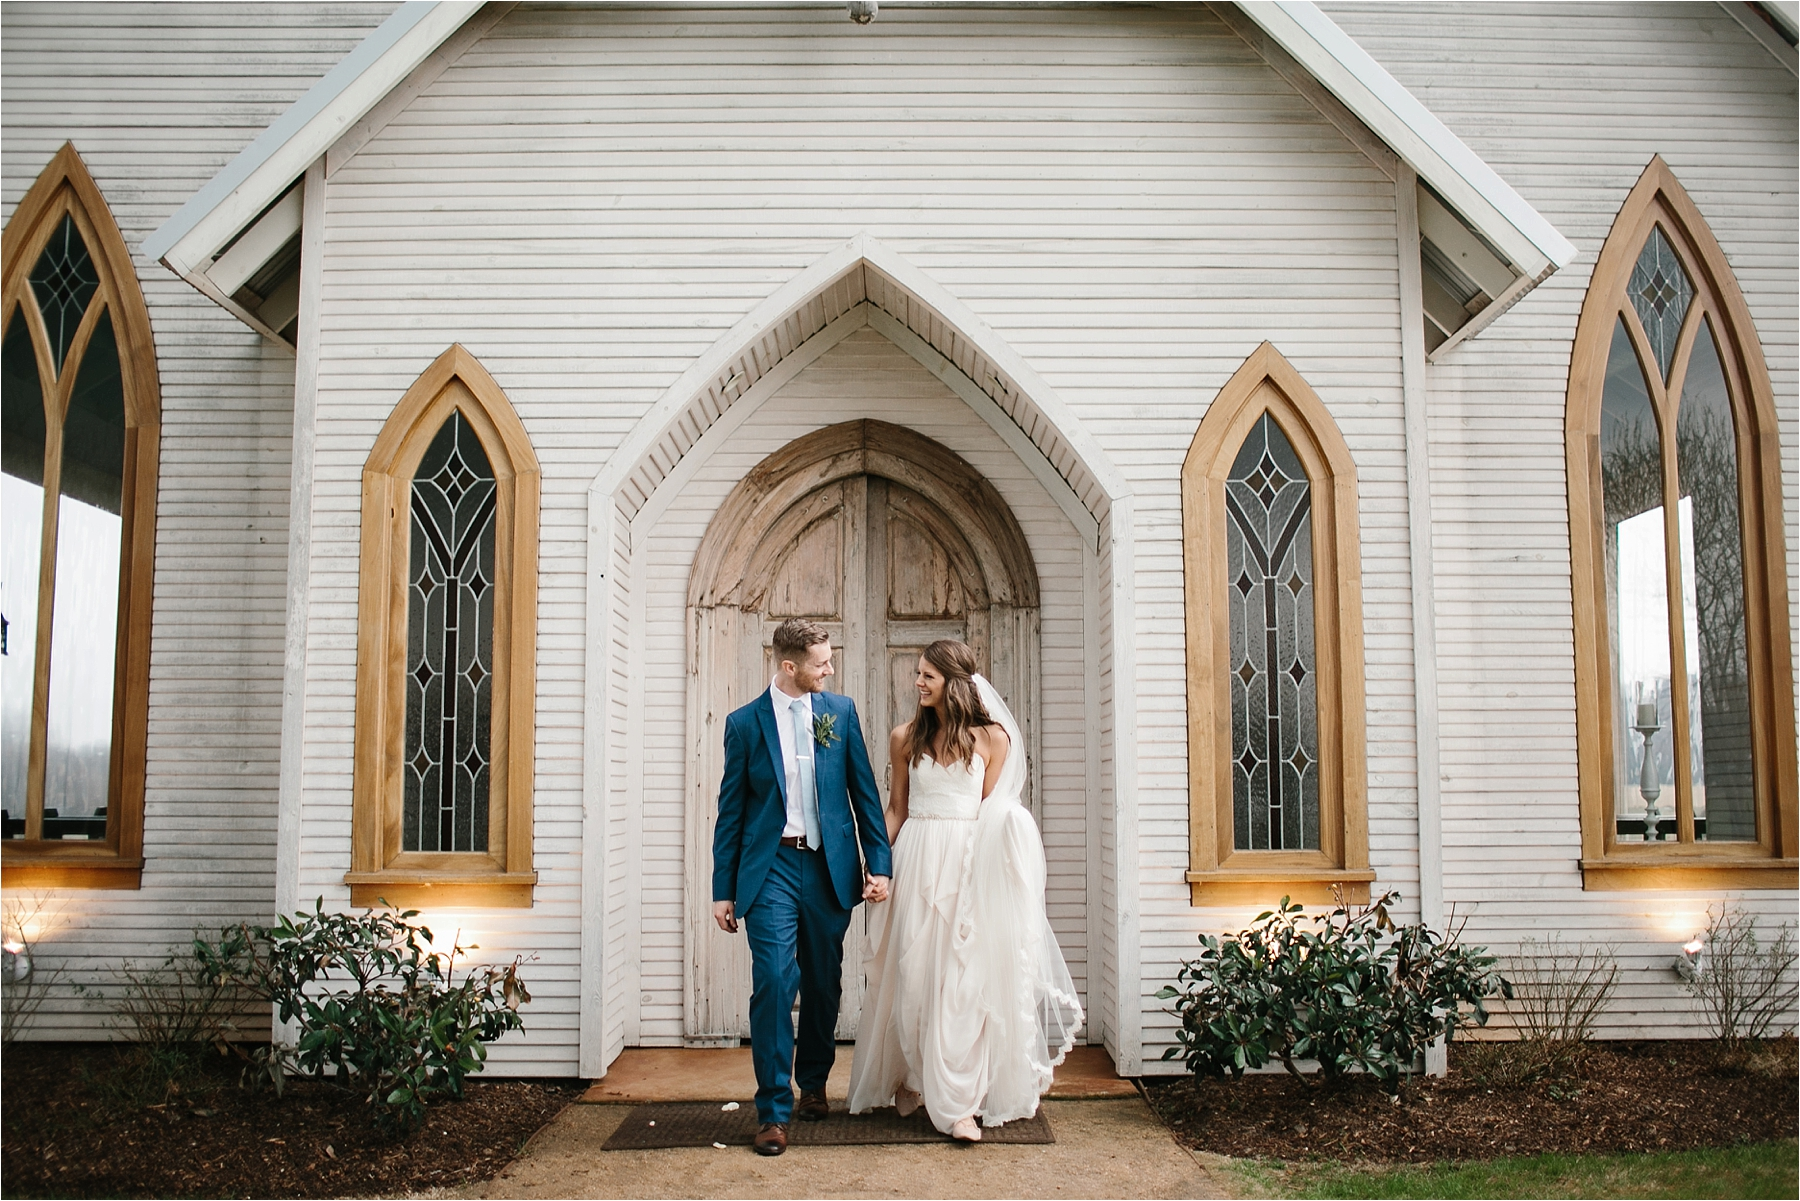 Lauren + Matt __ an intimate, emotional, blush pink, navy blue, and greenery toned wedding accents at the Brooks at Weatherford by North Texas Wedding Photographer Rachel Meagan Photography144